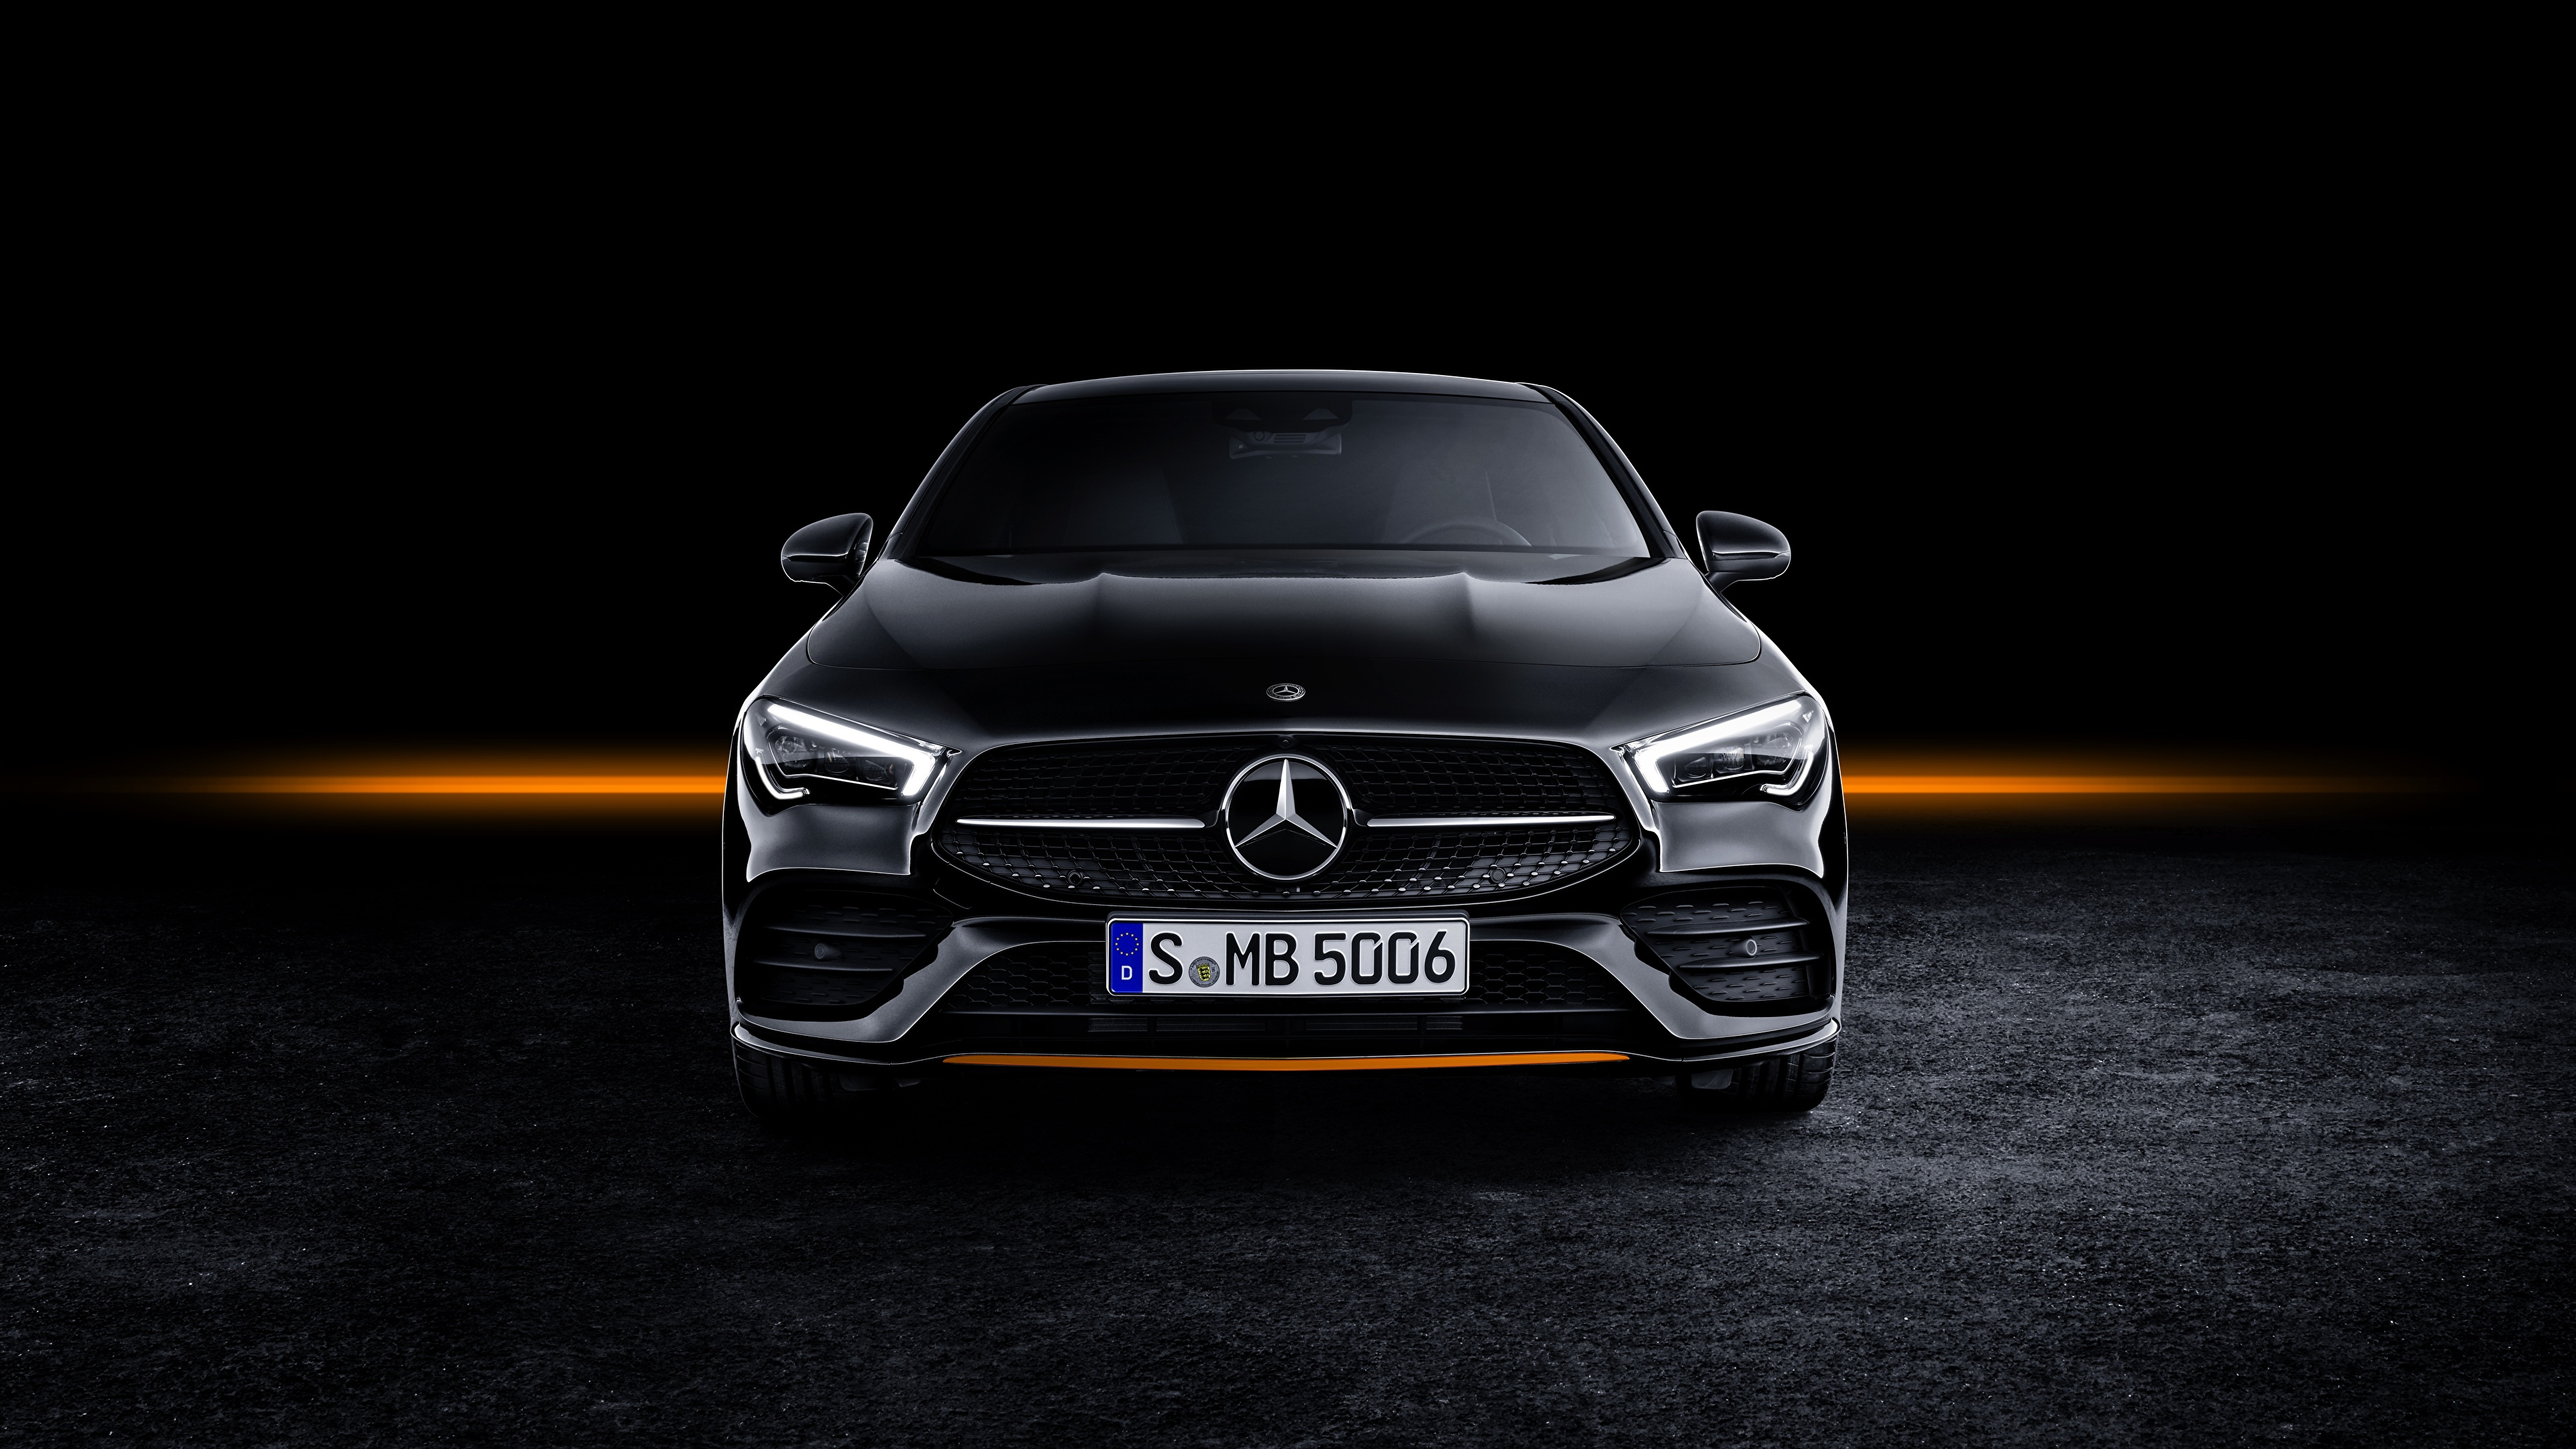 Wallpaper Mercedes Benz CLA AMG Line 2019 Edition Orange 3840x2160 3840x2160